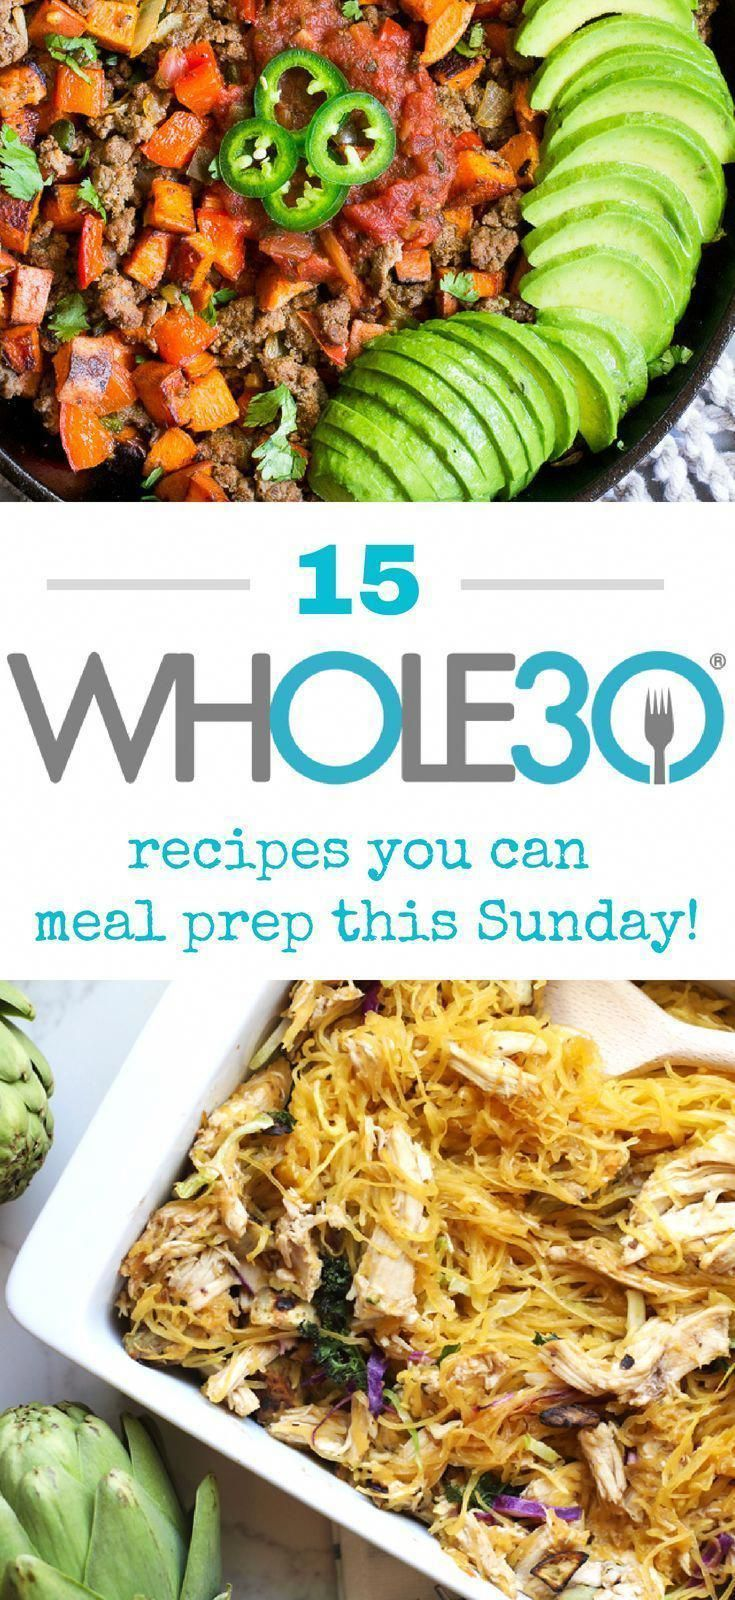 15 Whole30 Recipes You Can Meal Prep This Sunday #whole30recipes